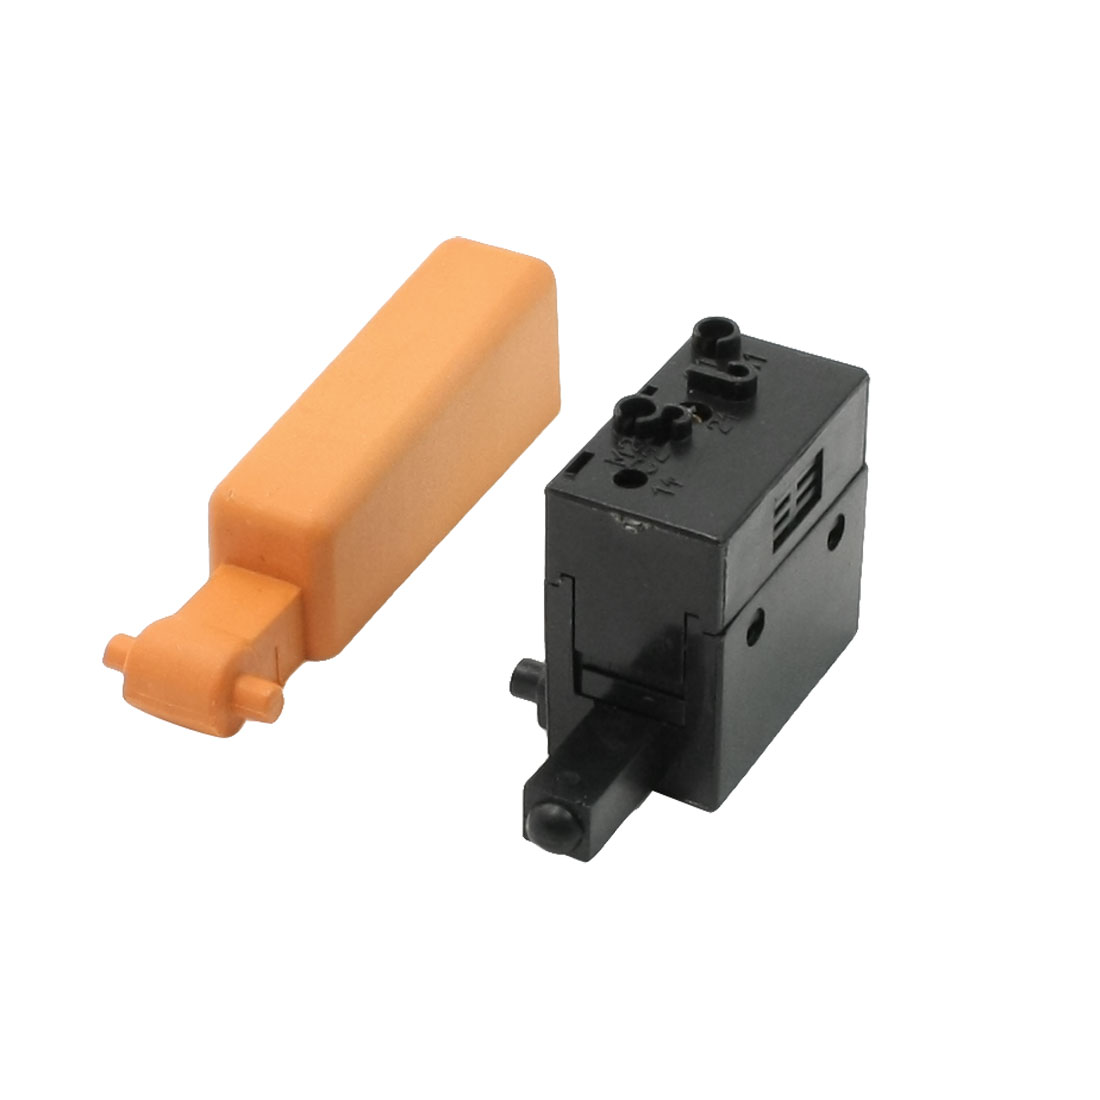 AC 230V 6A Momentary Electric Power Tool Trigger Switch